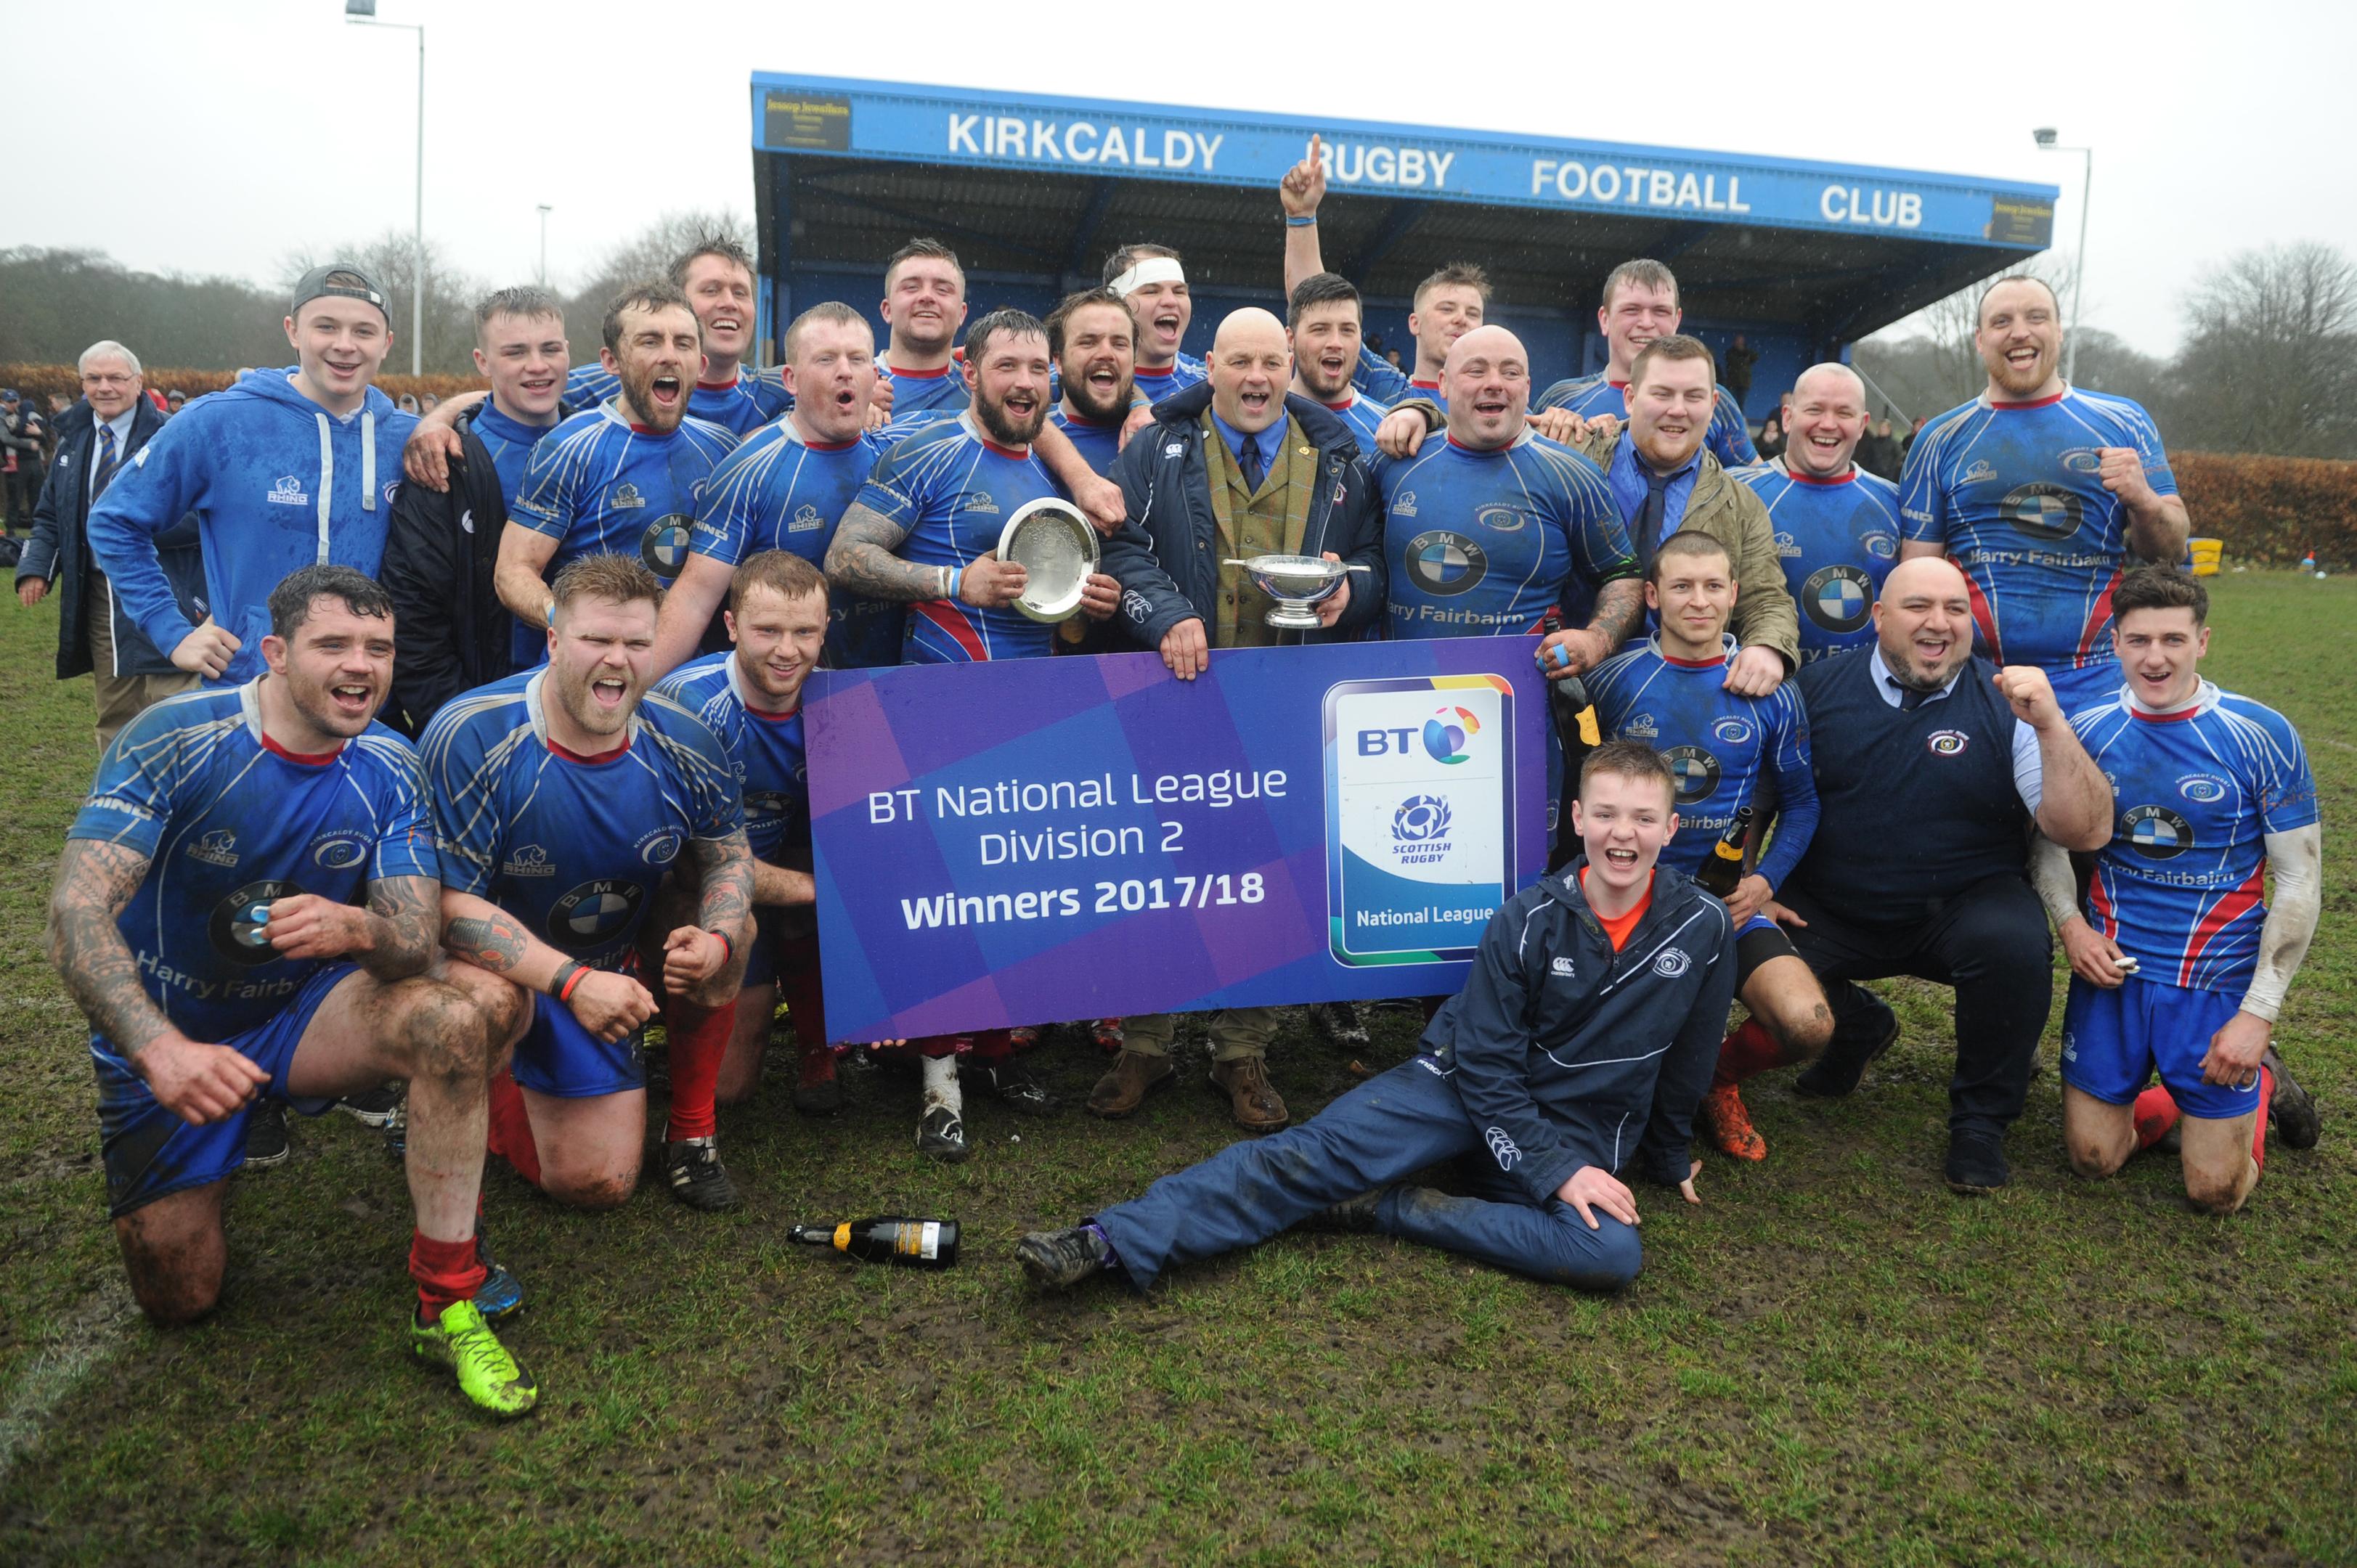 Club president Jimmy Bonner with the National keague Two Trophy and the victorious Kirkcaldy team.